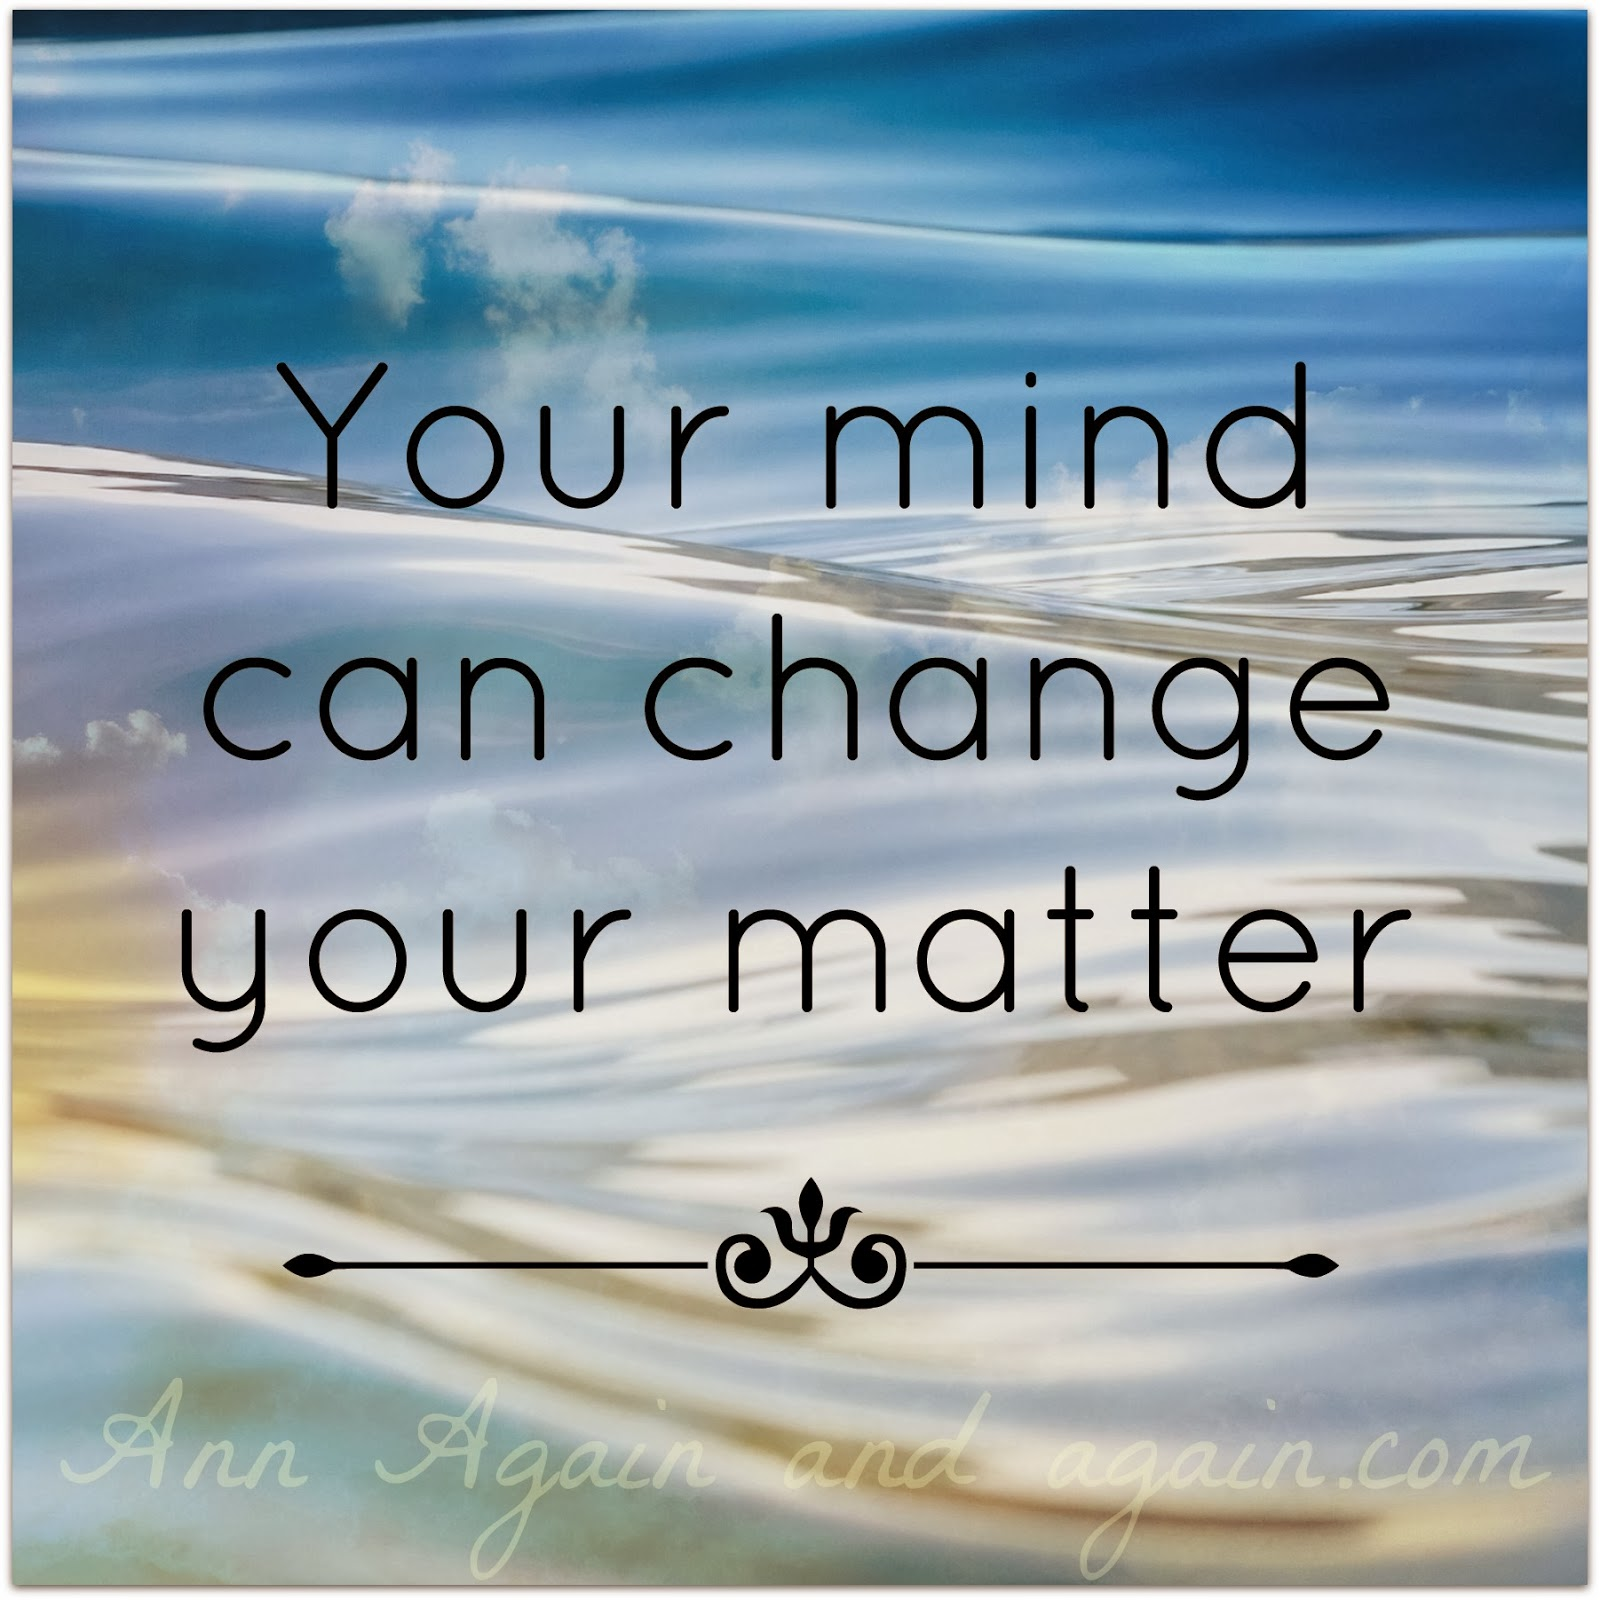 Your mind can change your matter - Ann Again and again